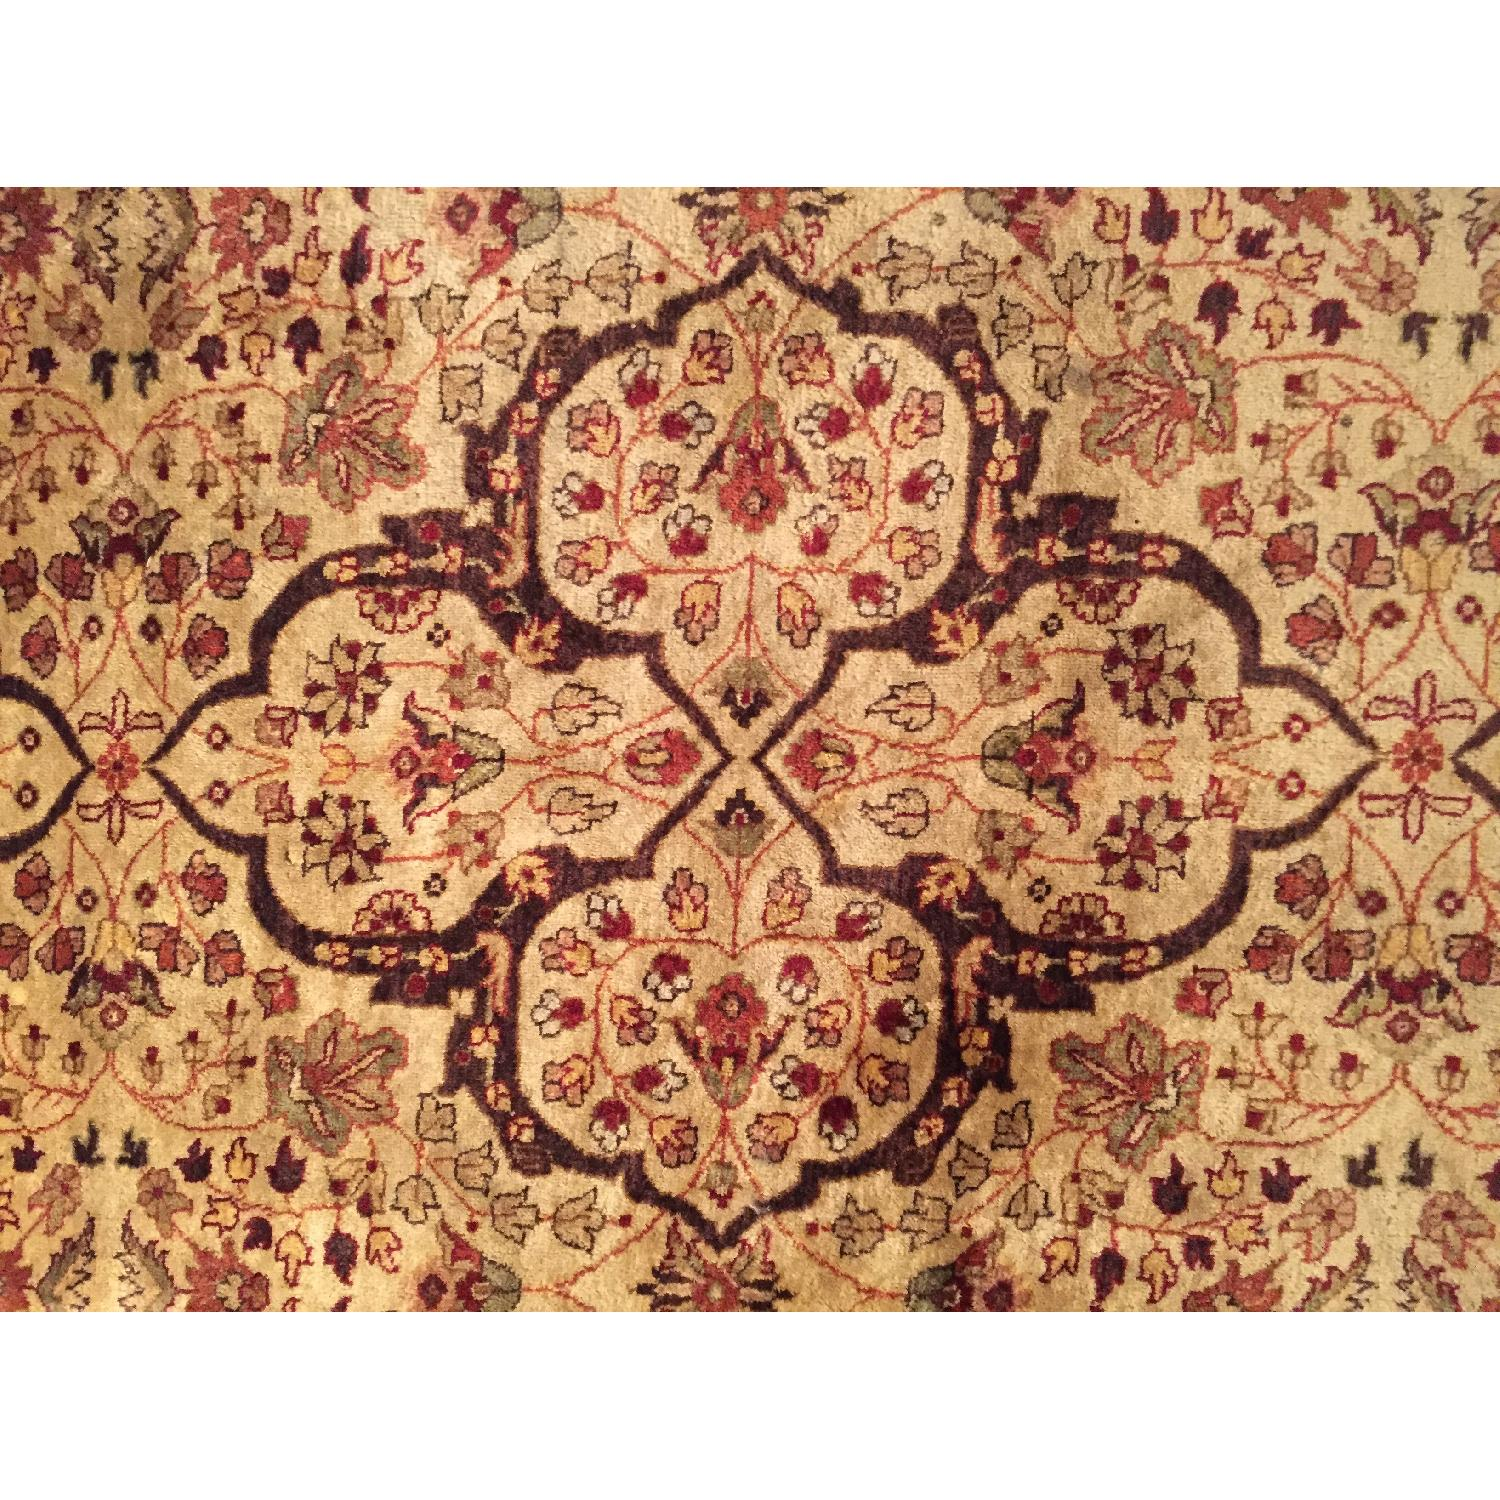 ABC Carpet and Home Tea-Stained Rug - image-3